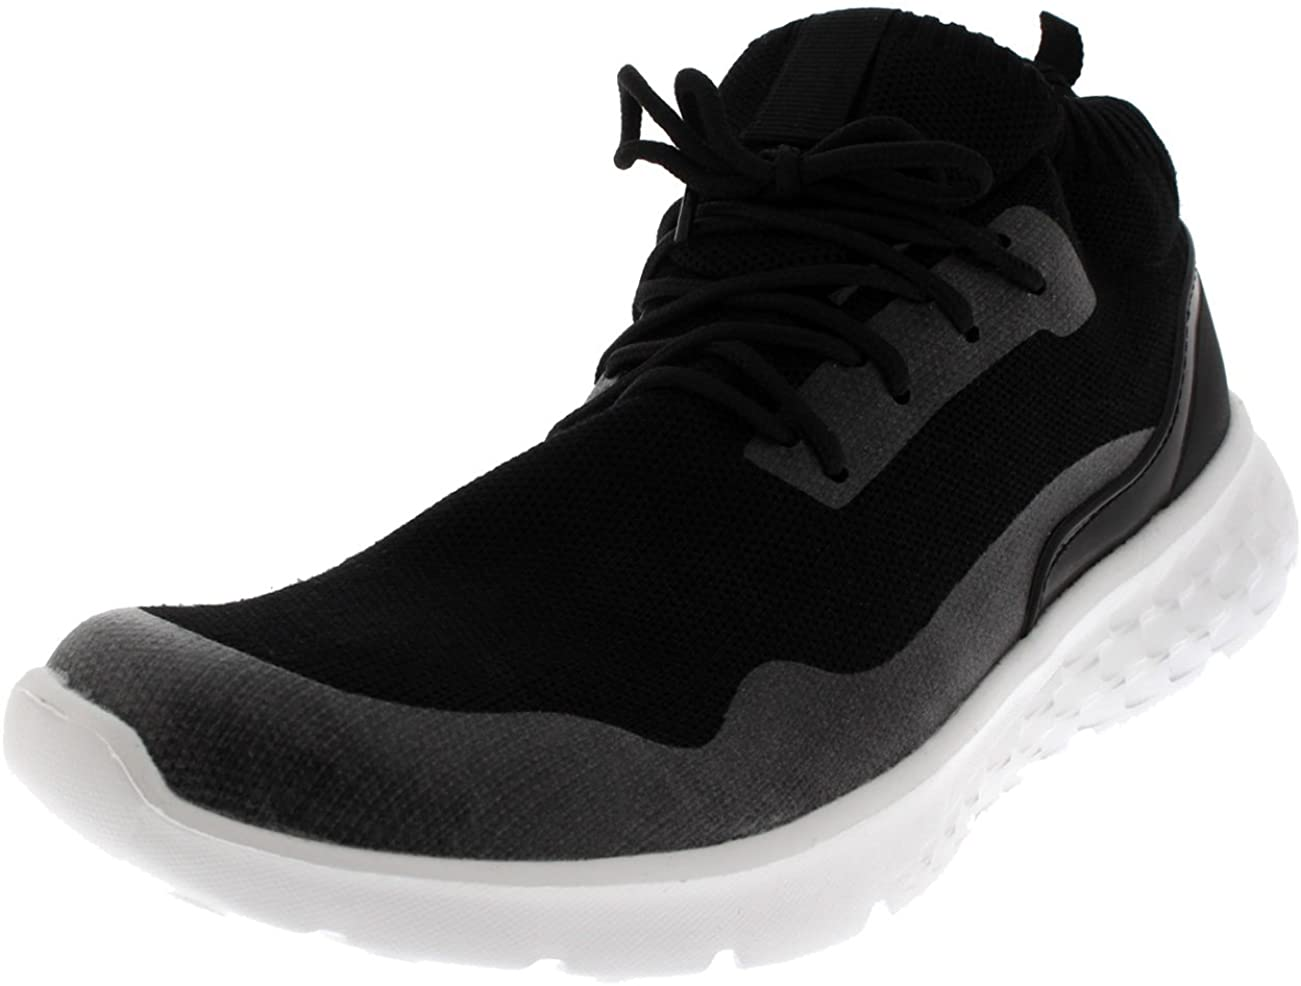 Women's Fitness Gym Trainers